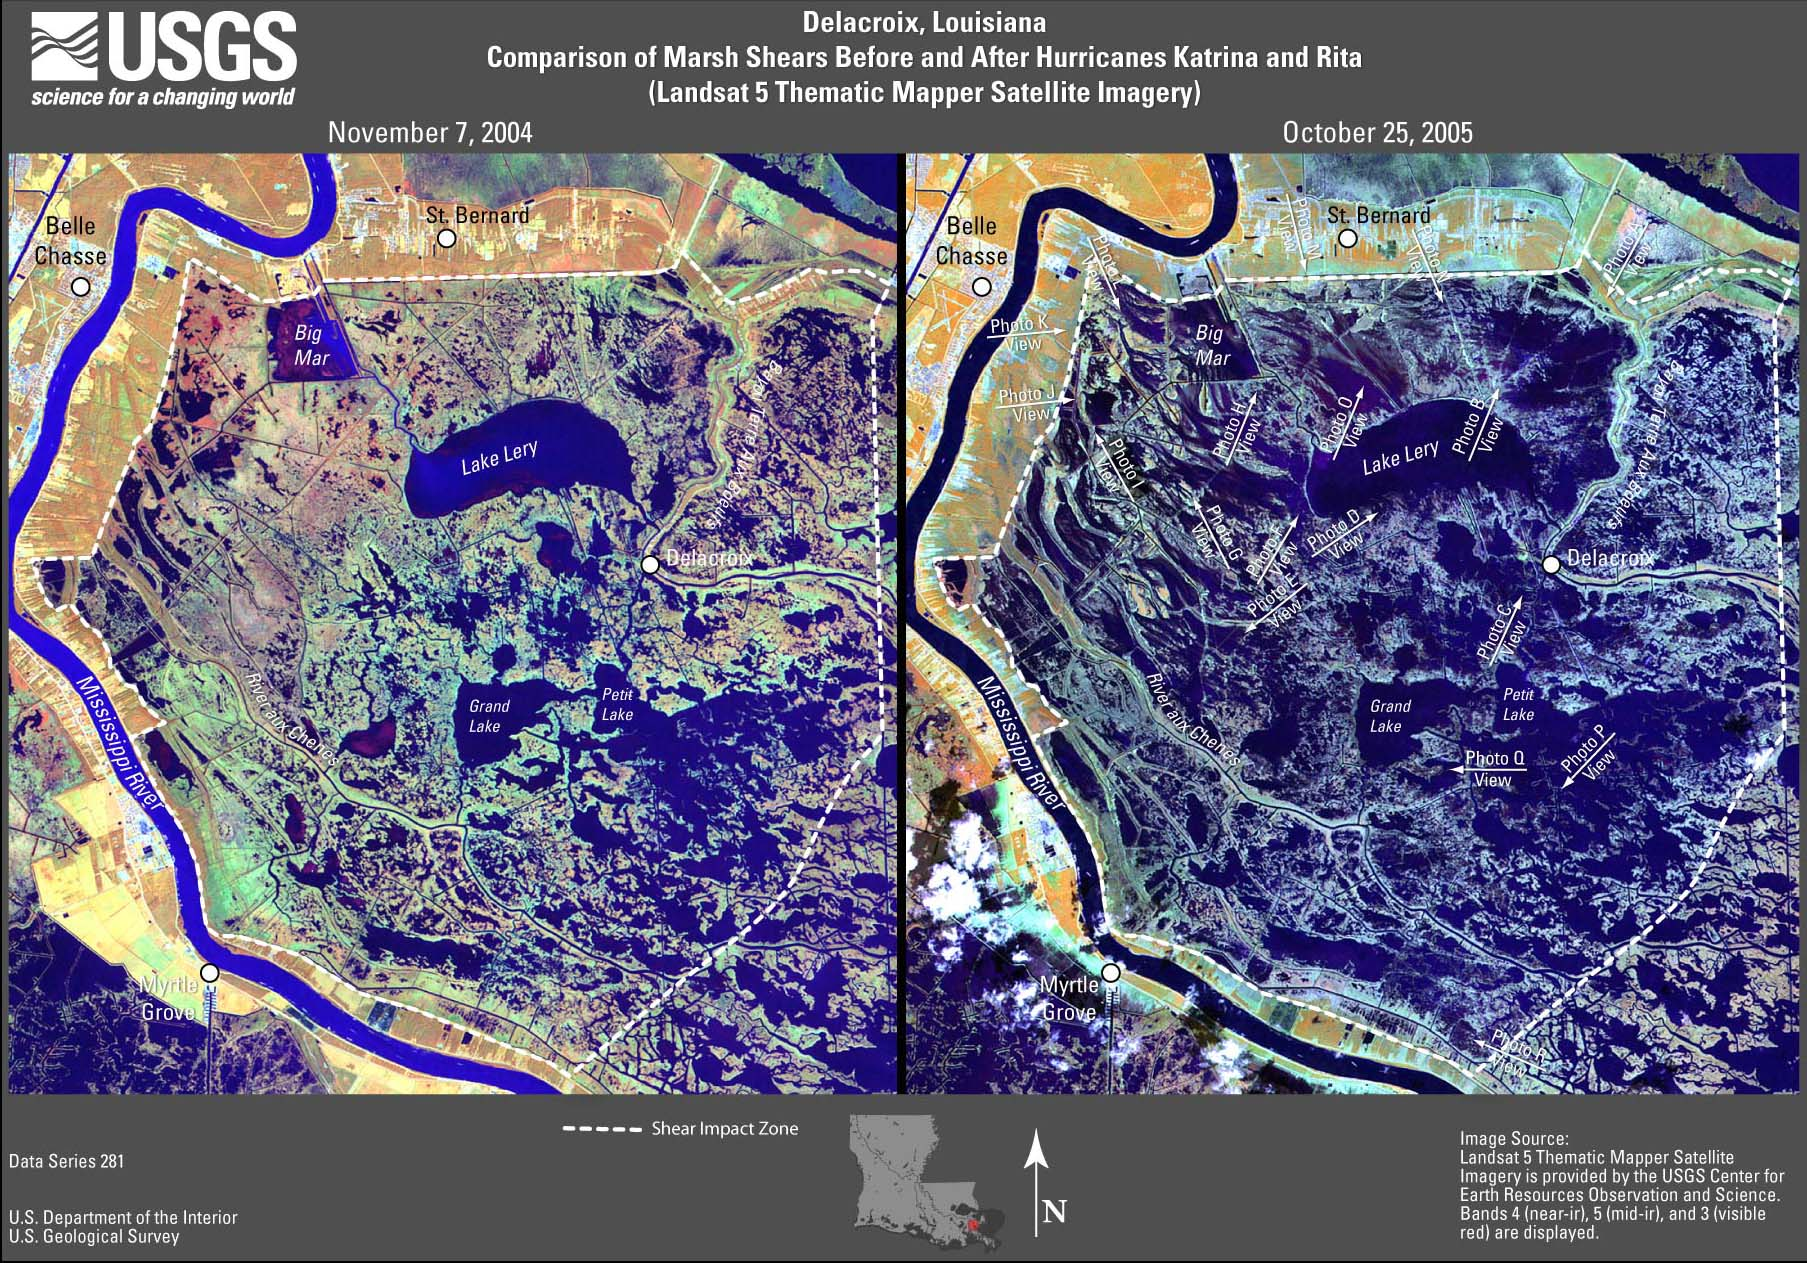 Usgs Data Series 281 Satellite Images And Aerial Photographs Of The